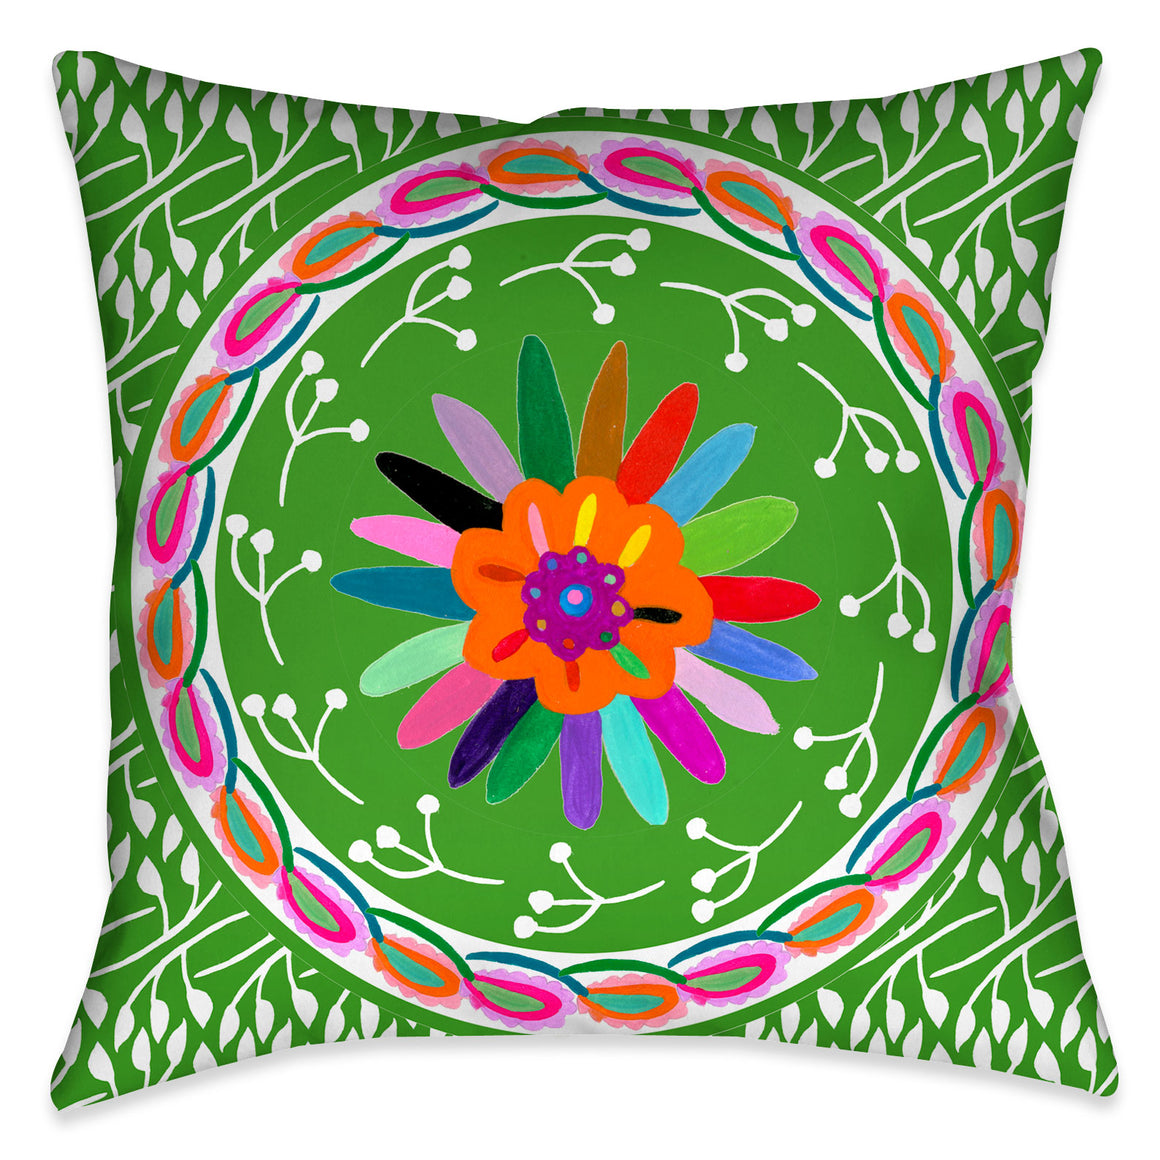 Folk Art Whimsy III Outdoor Decorative Pillow